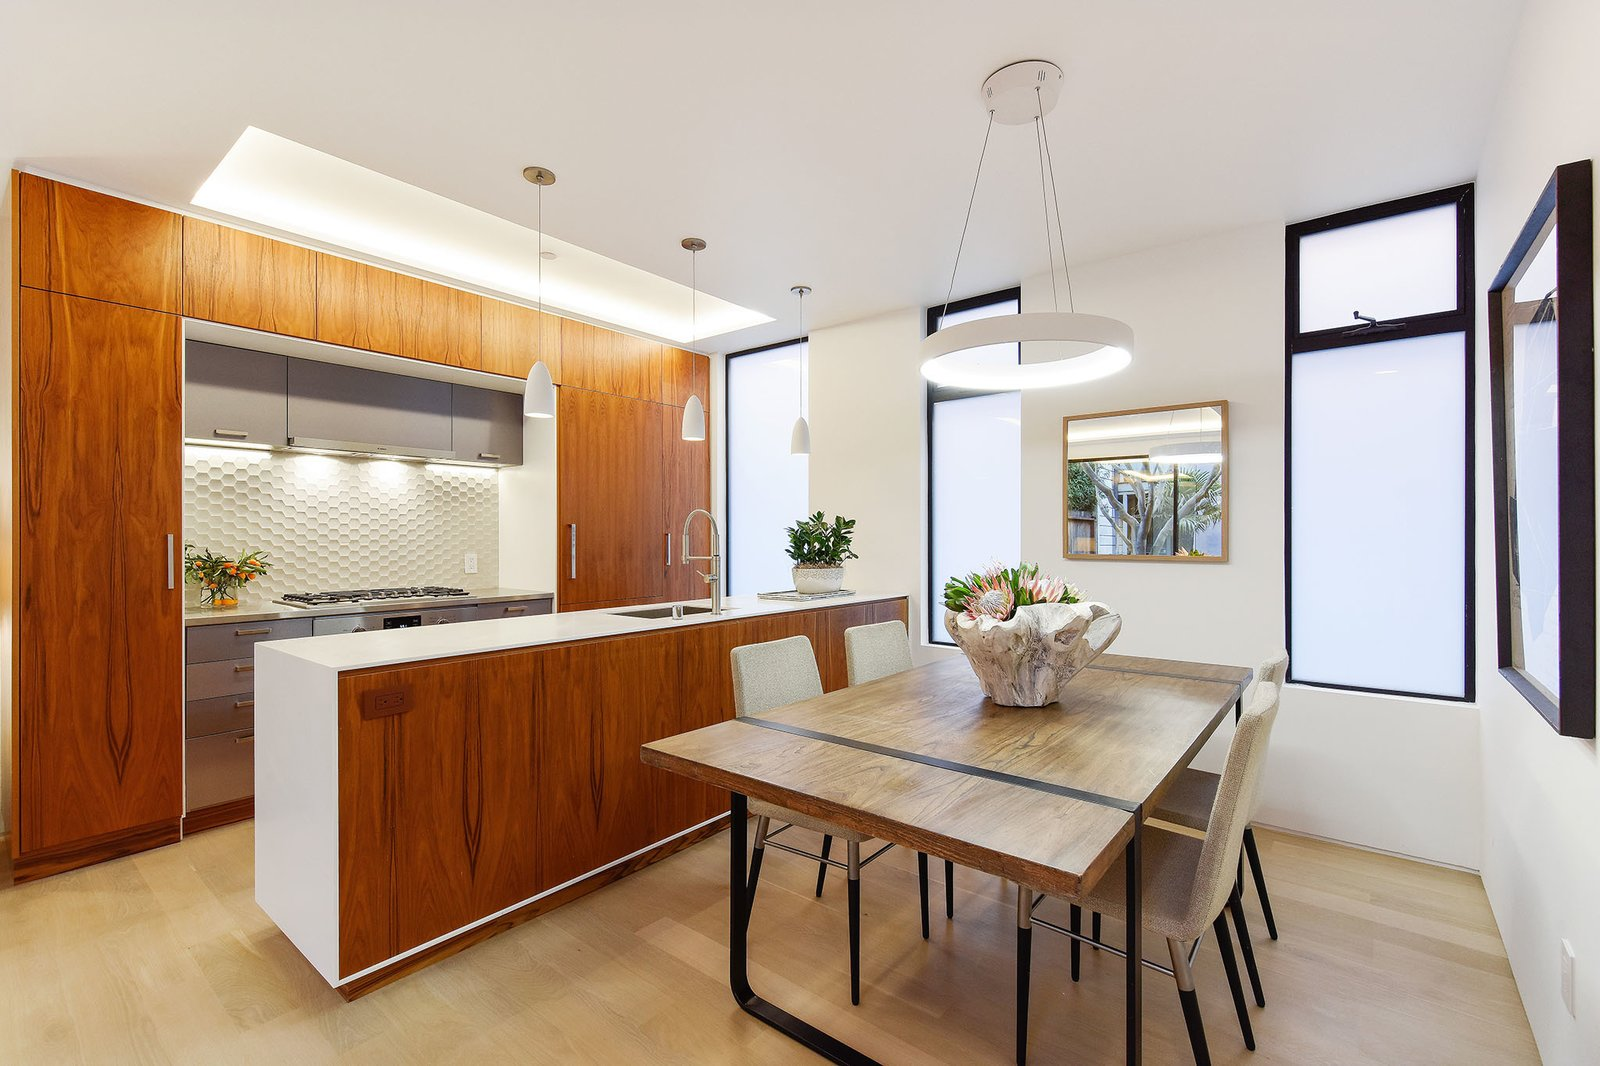 Dining Room and Pendant Lighting  For Sale: 188 Quane Street